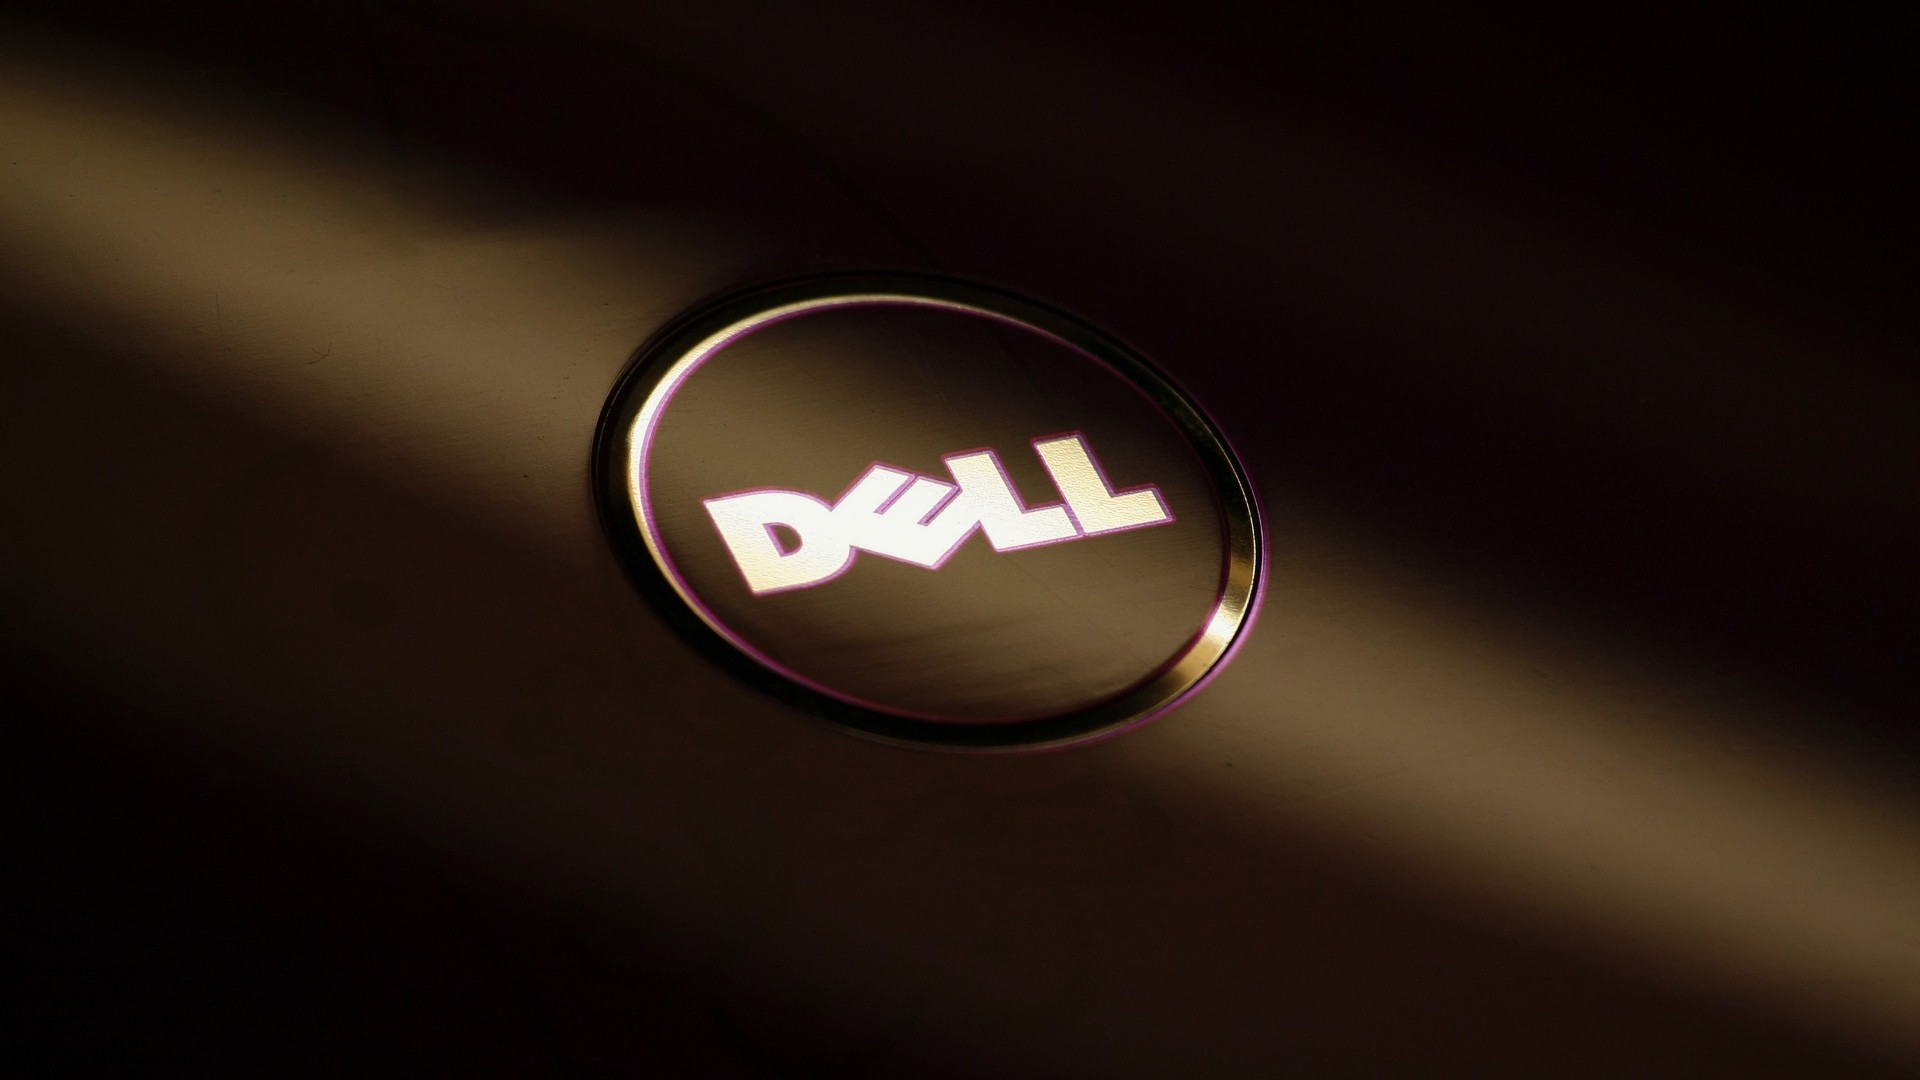 Hd Dell Backgrounds Dell Wallpaper Images For Windows: Dell Wallpapers (64+ Images